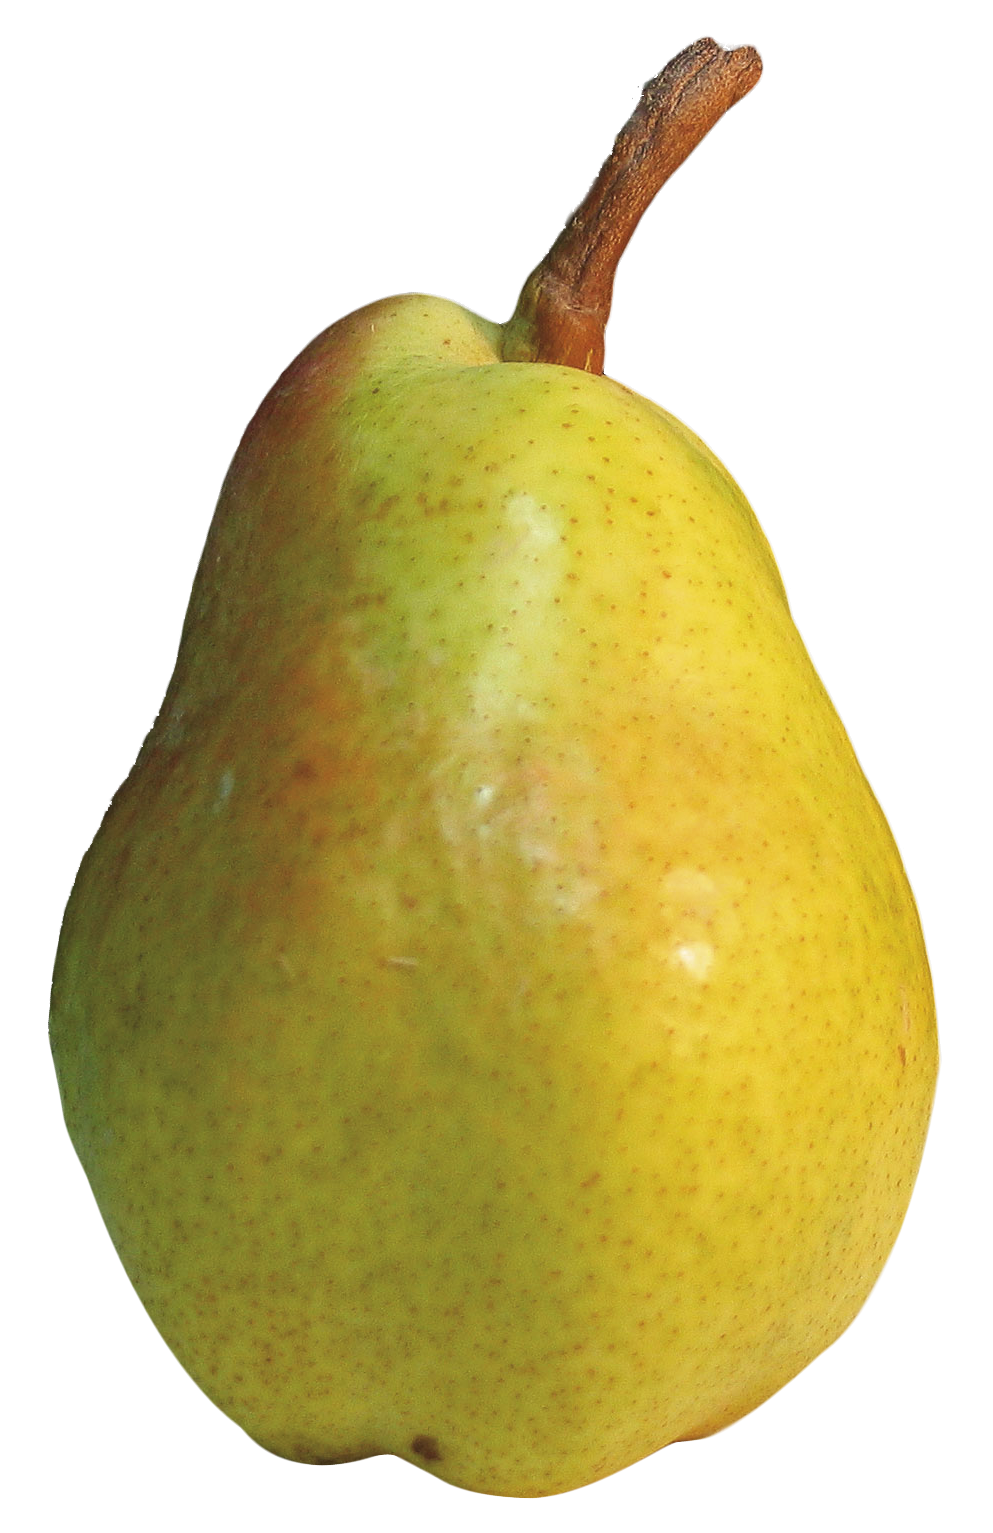 Pear PNG - 8920